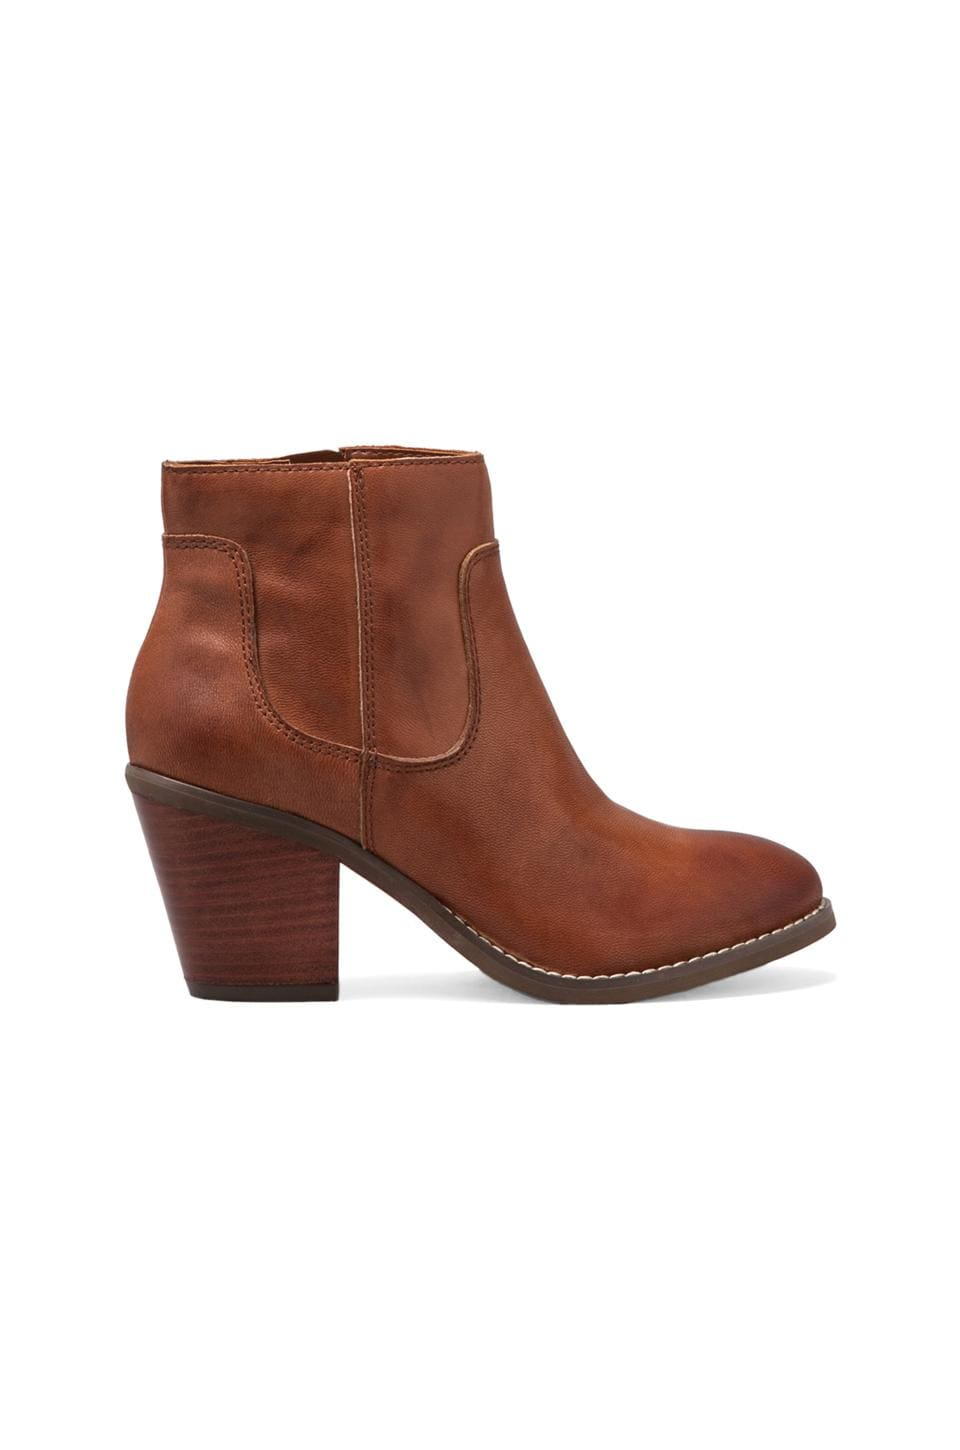 Seychelles Crazy For You Bootie in Whiskey Leather